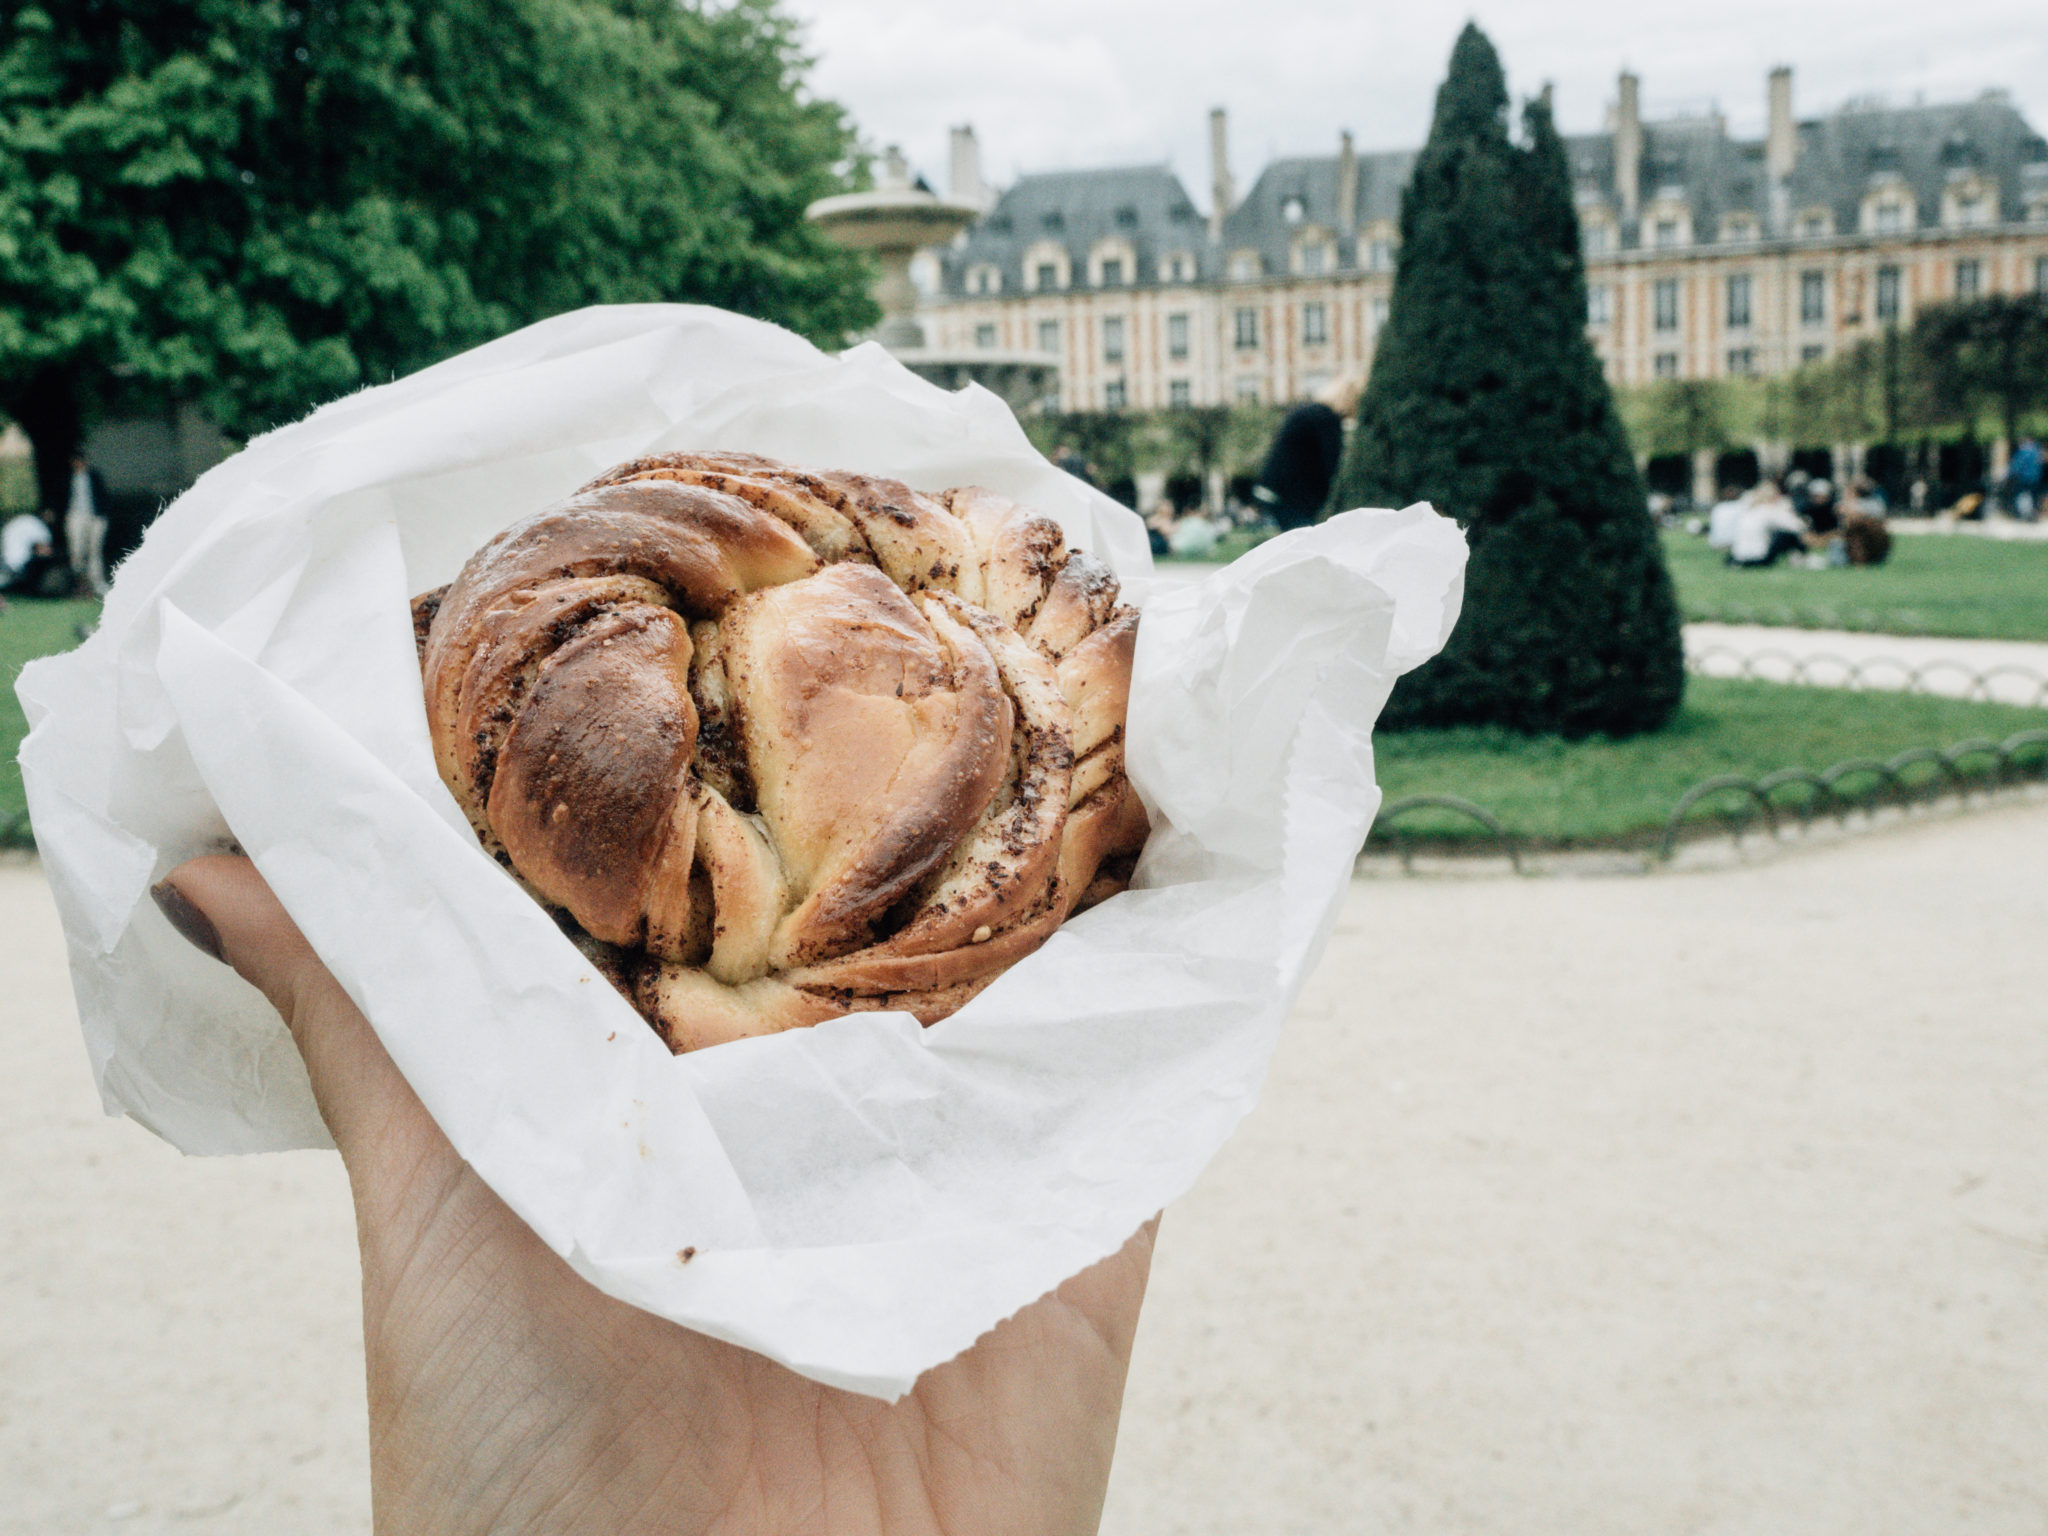 Sundays in Paris | Where to go on a Sunday in Paris by WORLD OF WANDERLUST